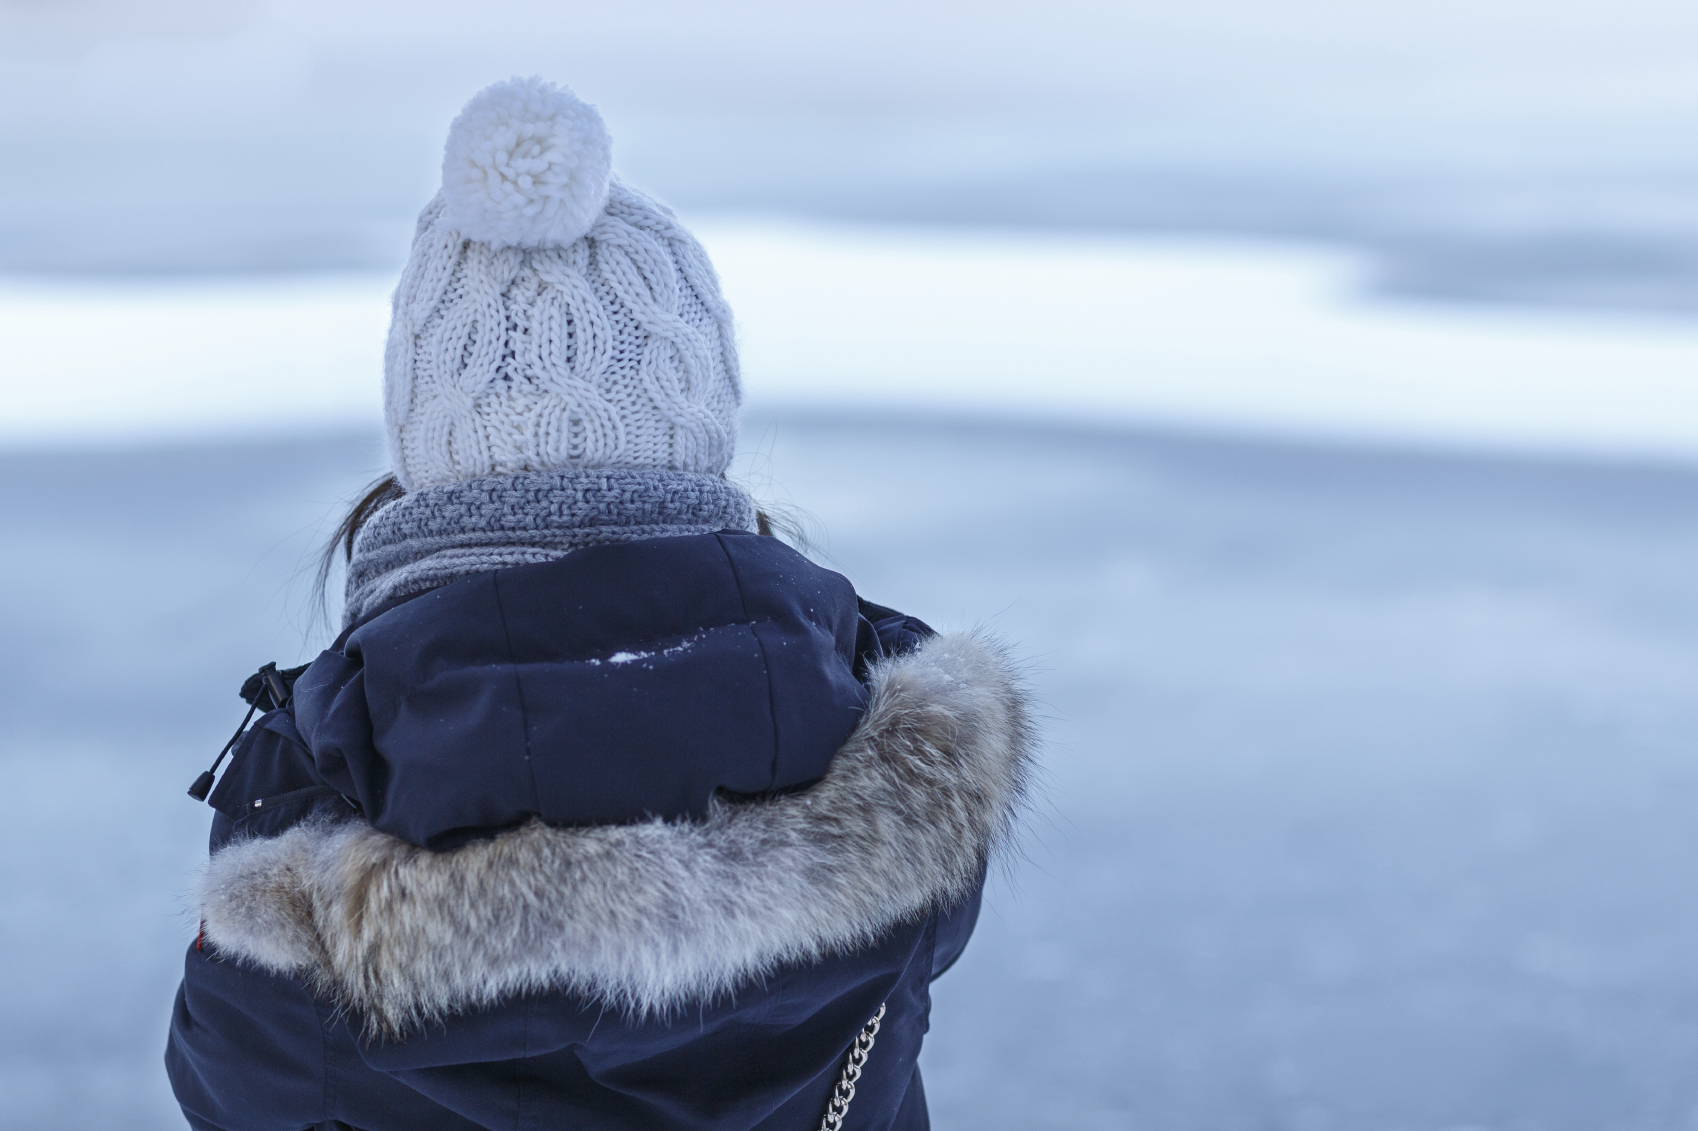 Layering and protection for cold weather